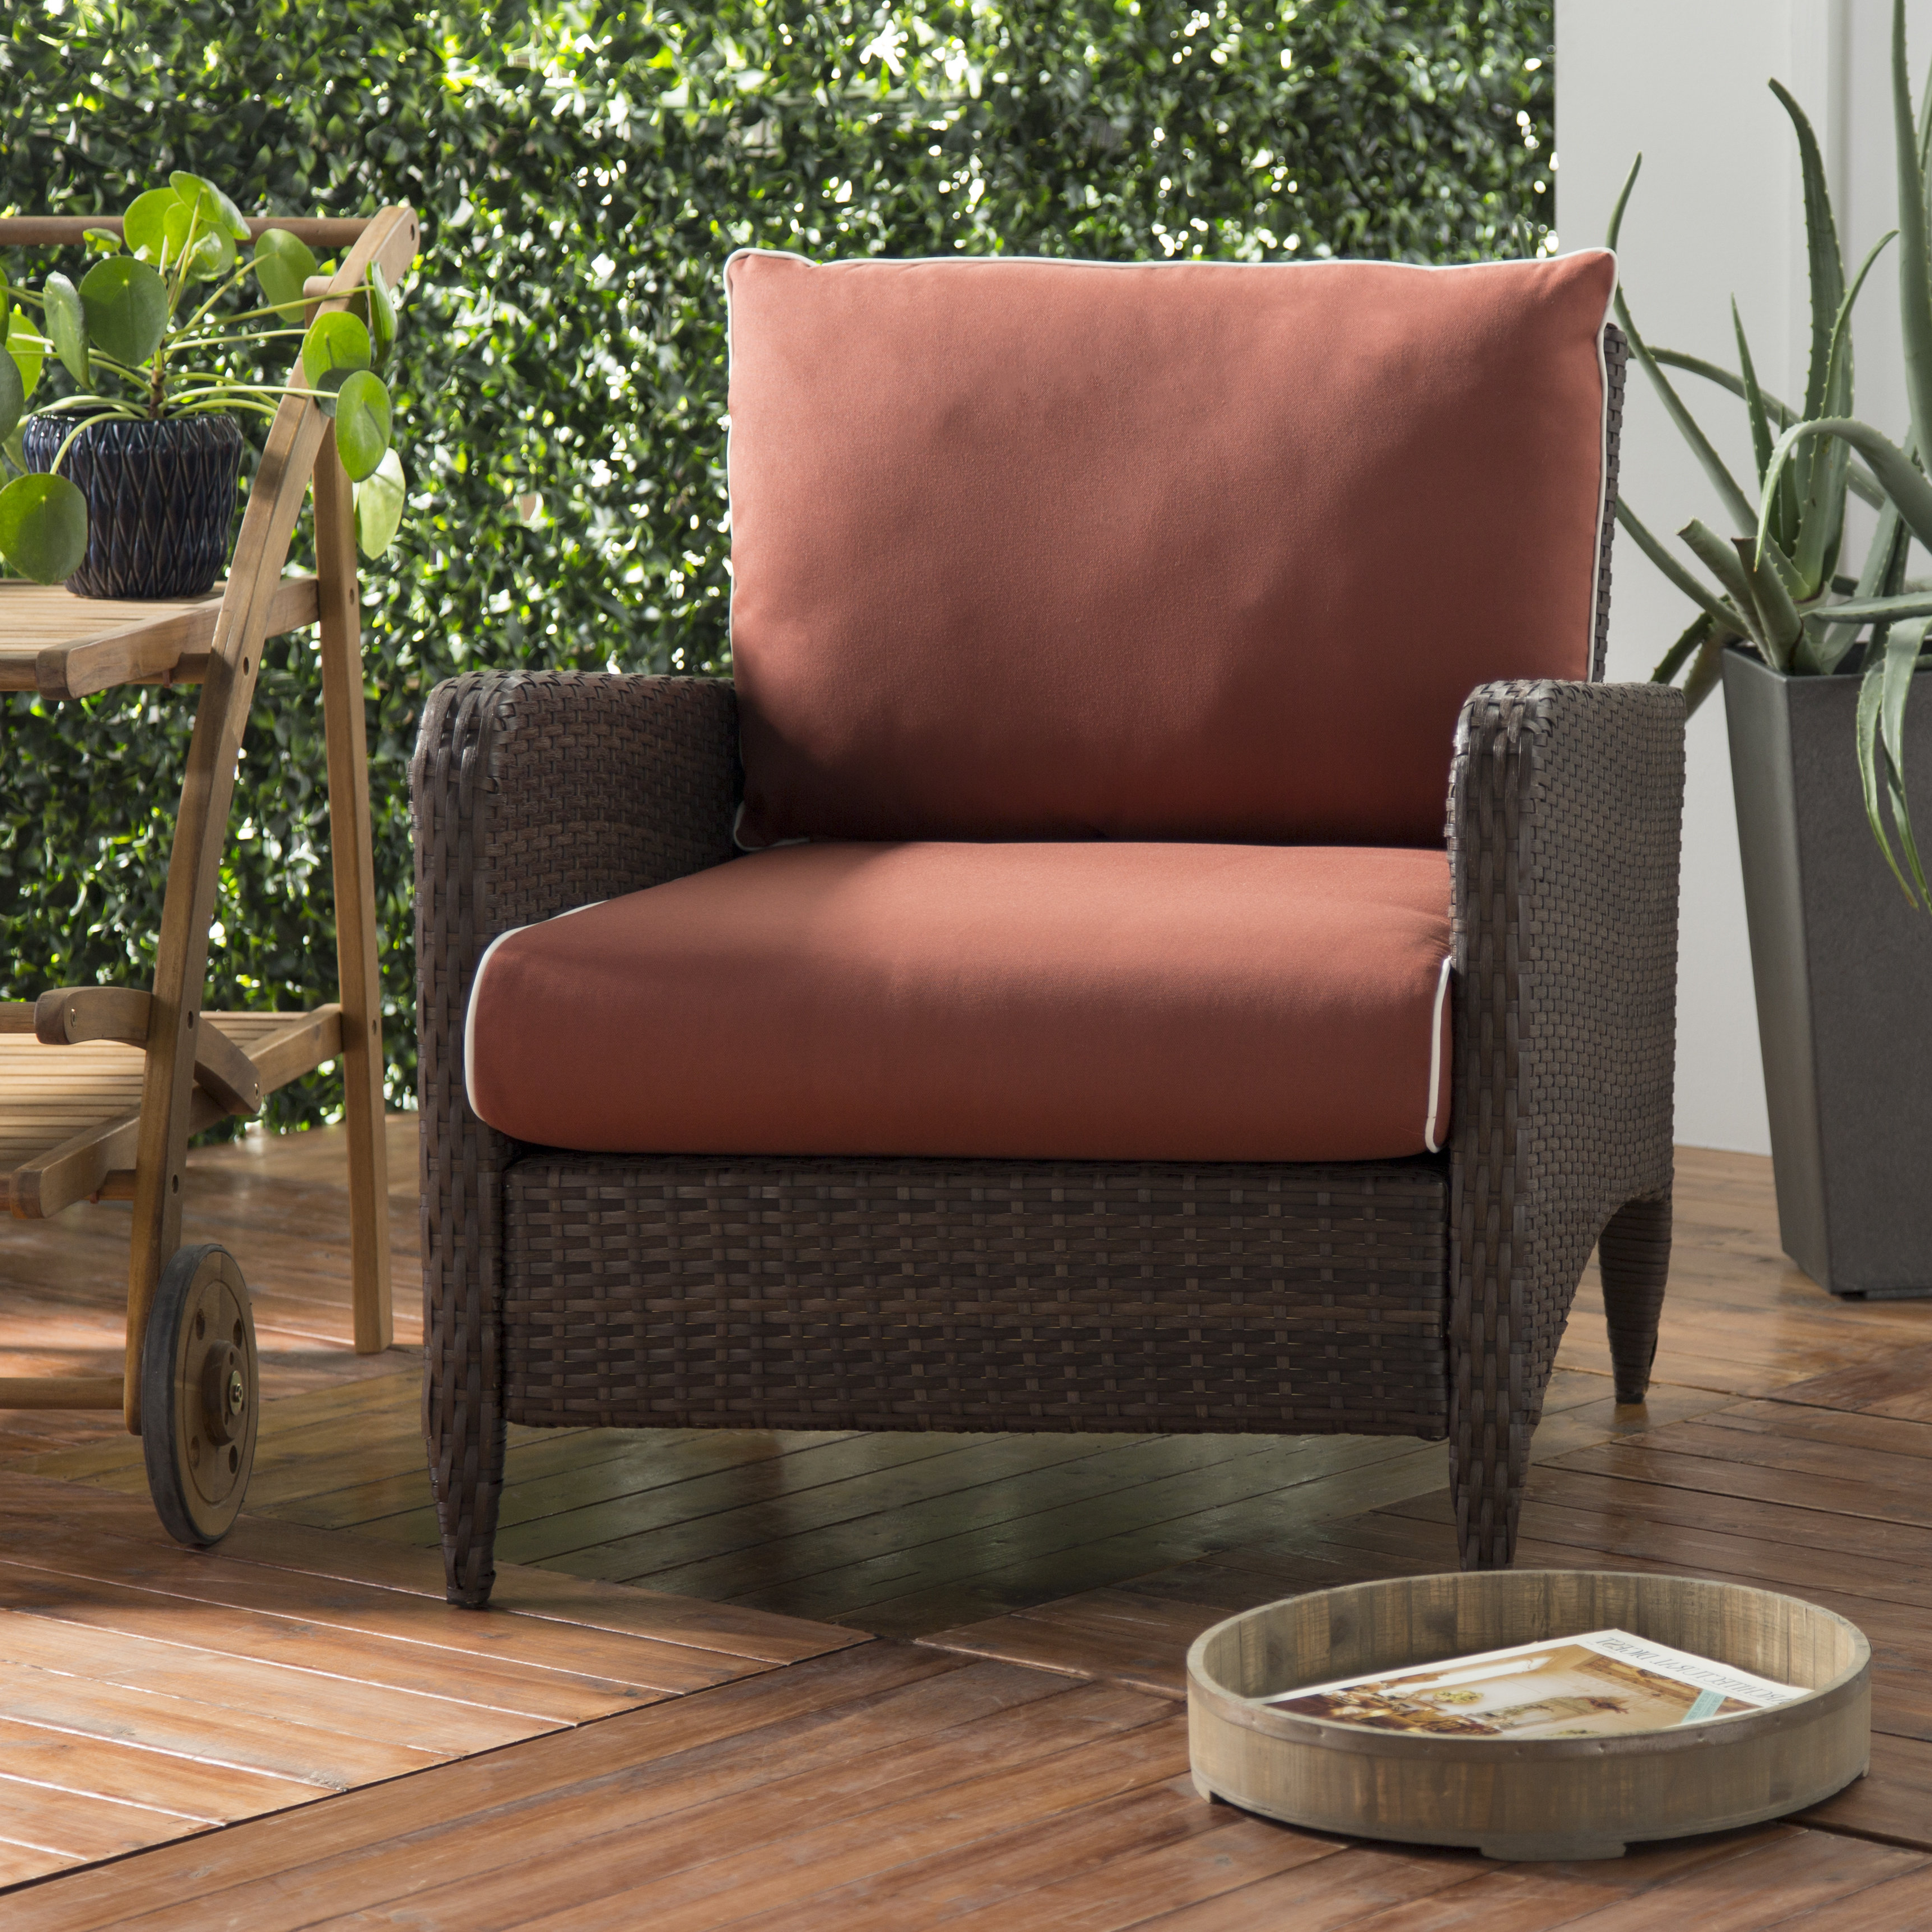 Mosca Patio Chair With Cushion With Regard To Trendy Mosca Patio Loveseats With Cushions (View 6 of 20)